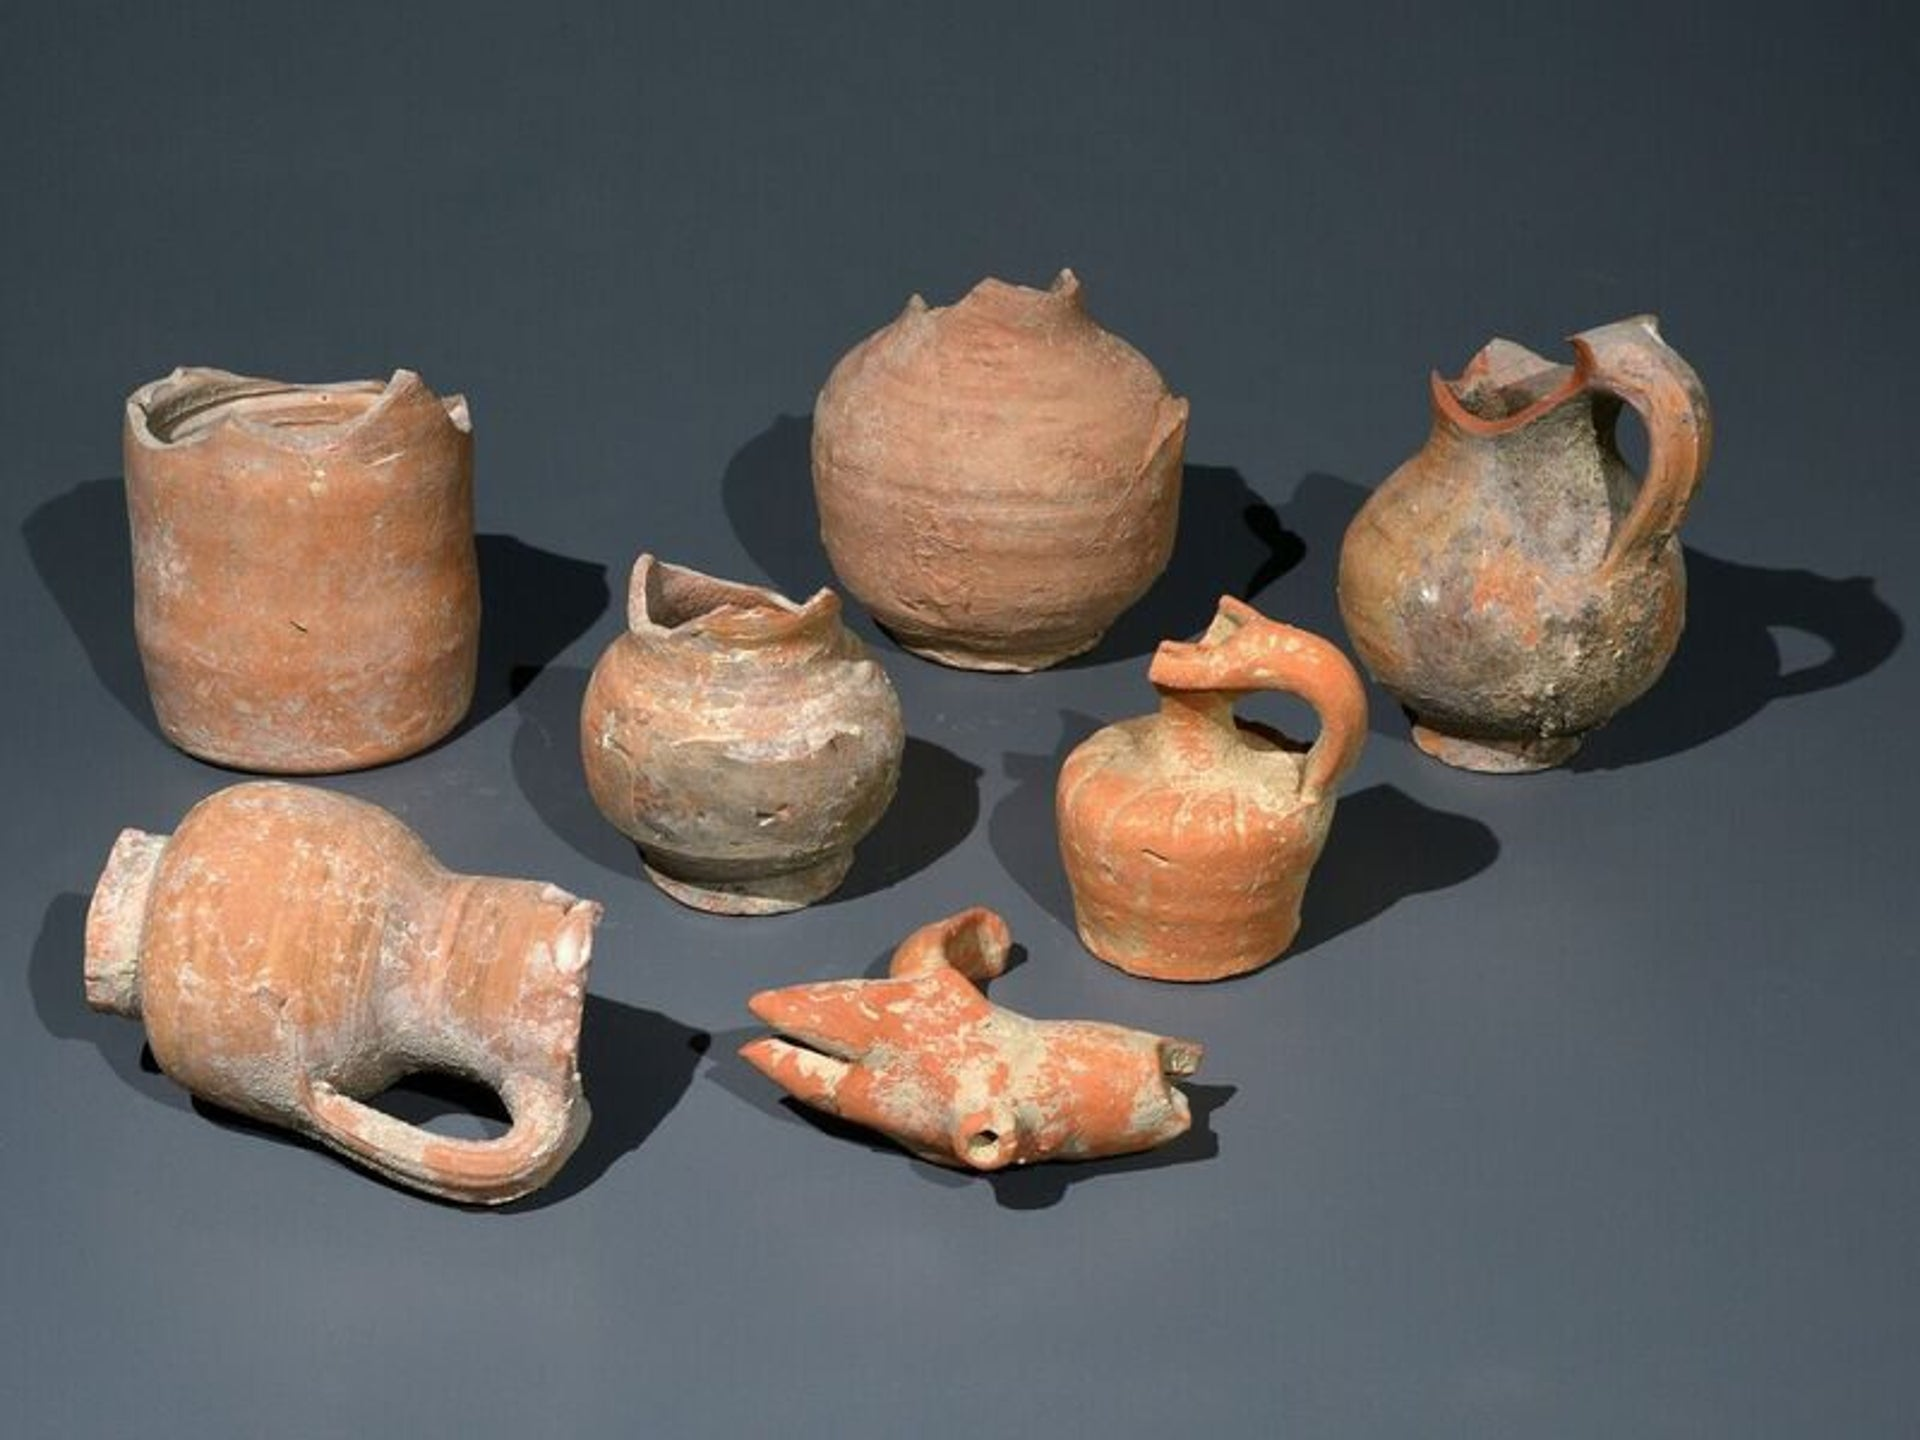 Pottery vessels dating back to the Byzantine period and found at Ein Hanya.